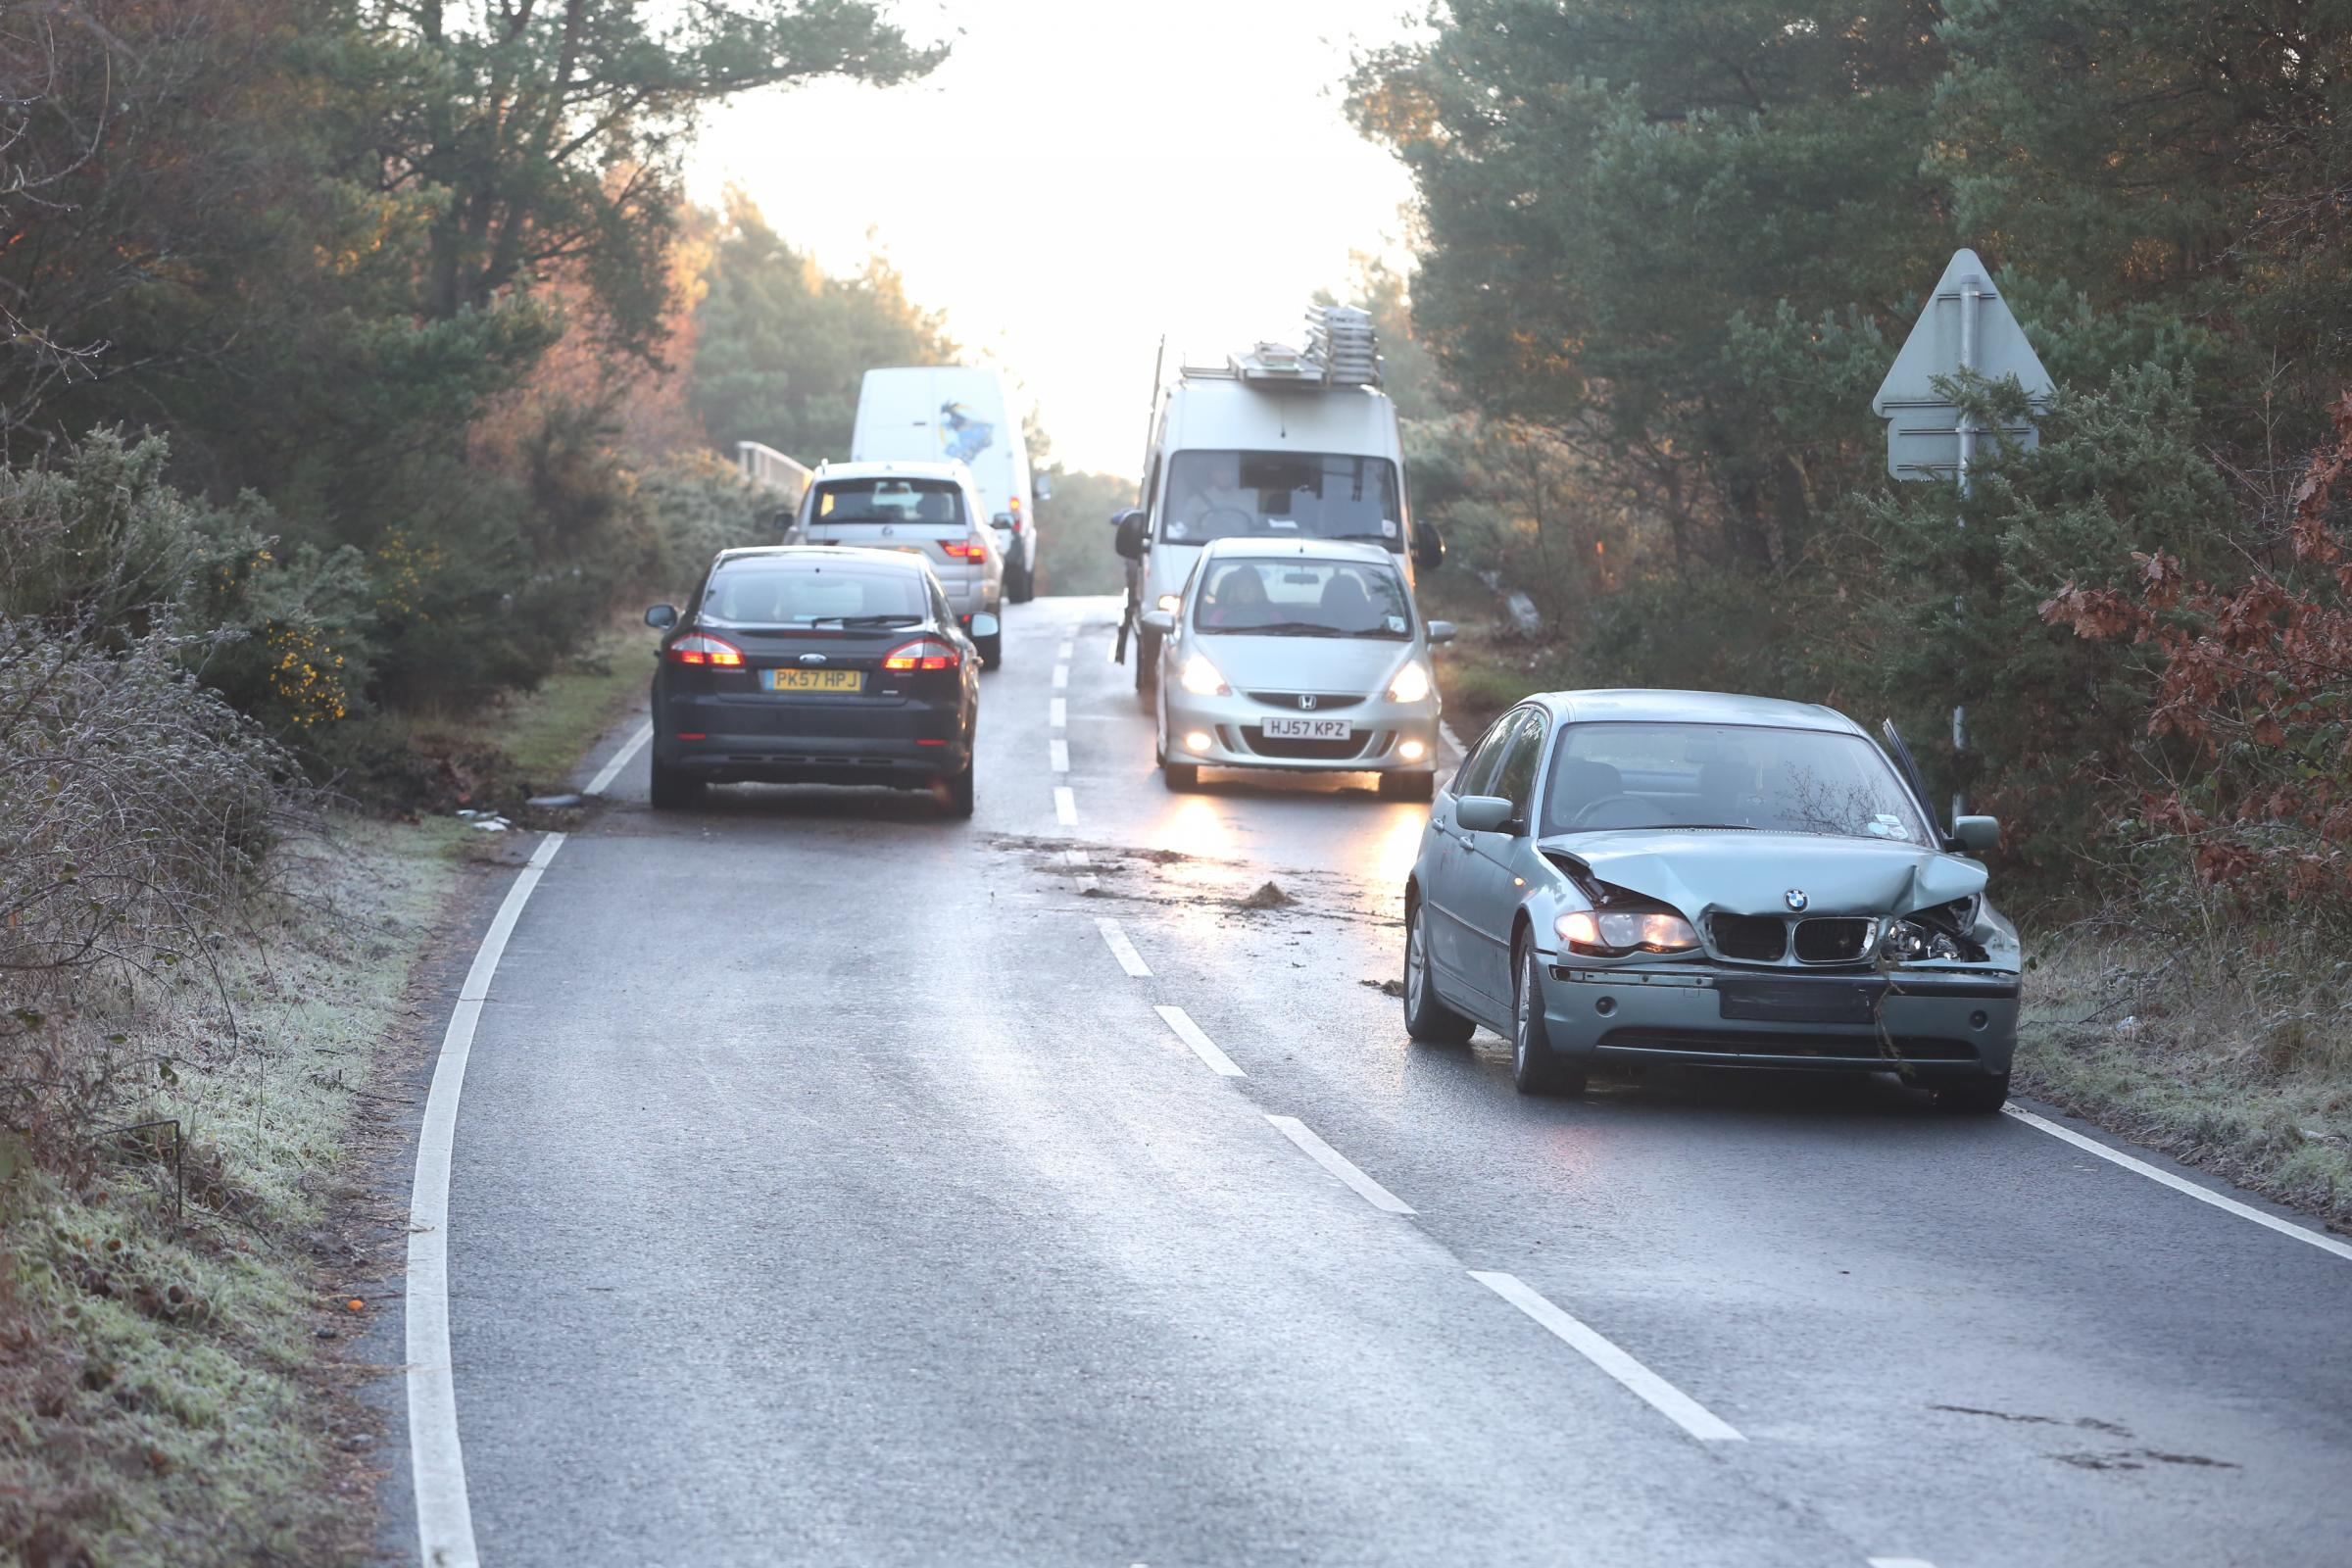 Drivers urged to take care on Avon Causeway due to icy road